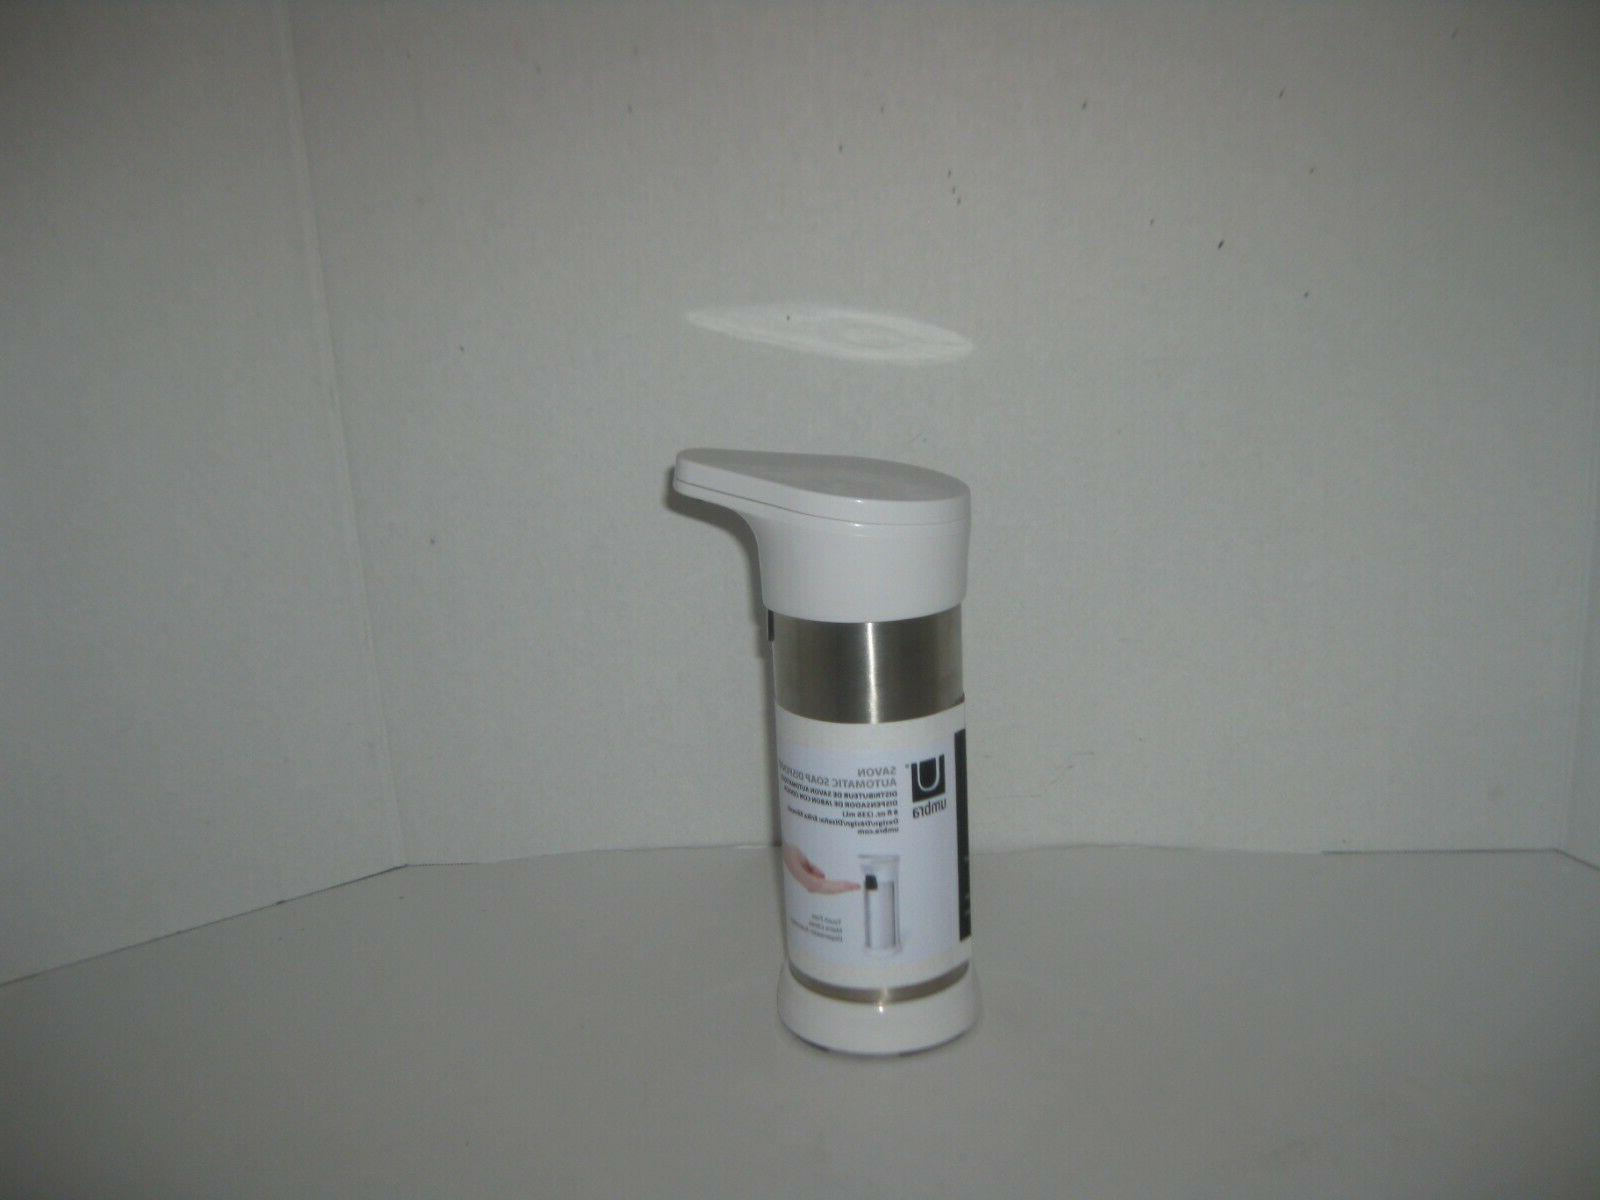 NEW UMBRA SAVON AUTOMATIC SOAP DISPENSER 8 OZ TOUCH FREE